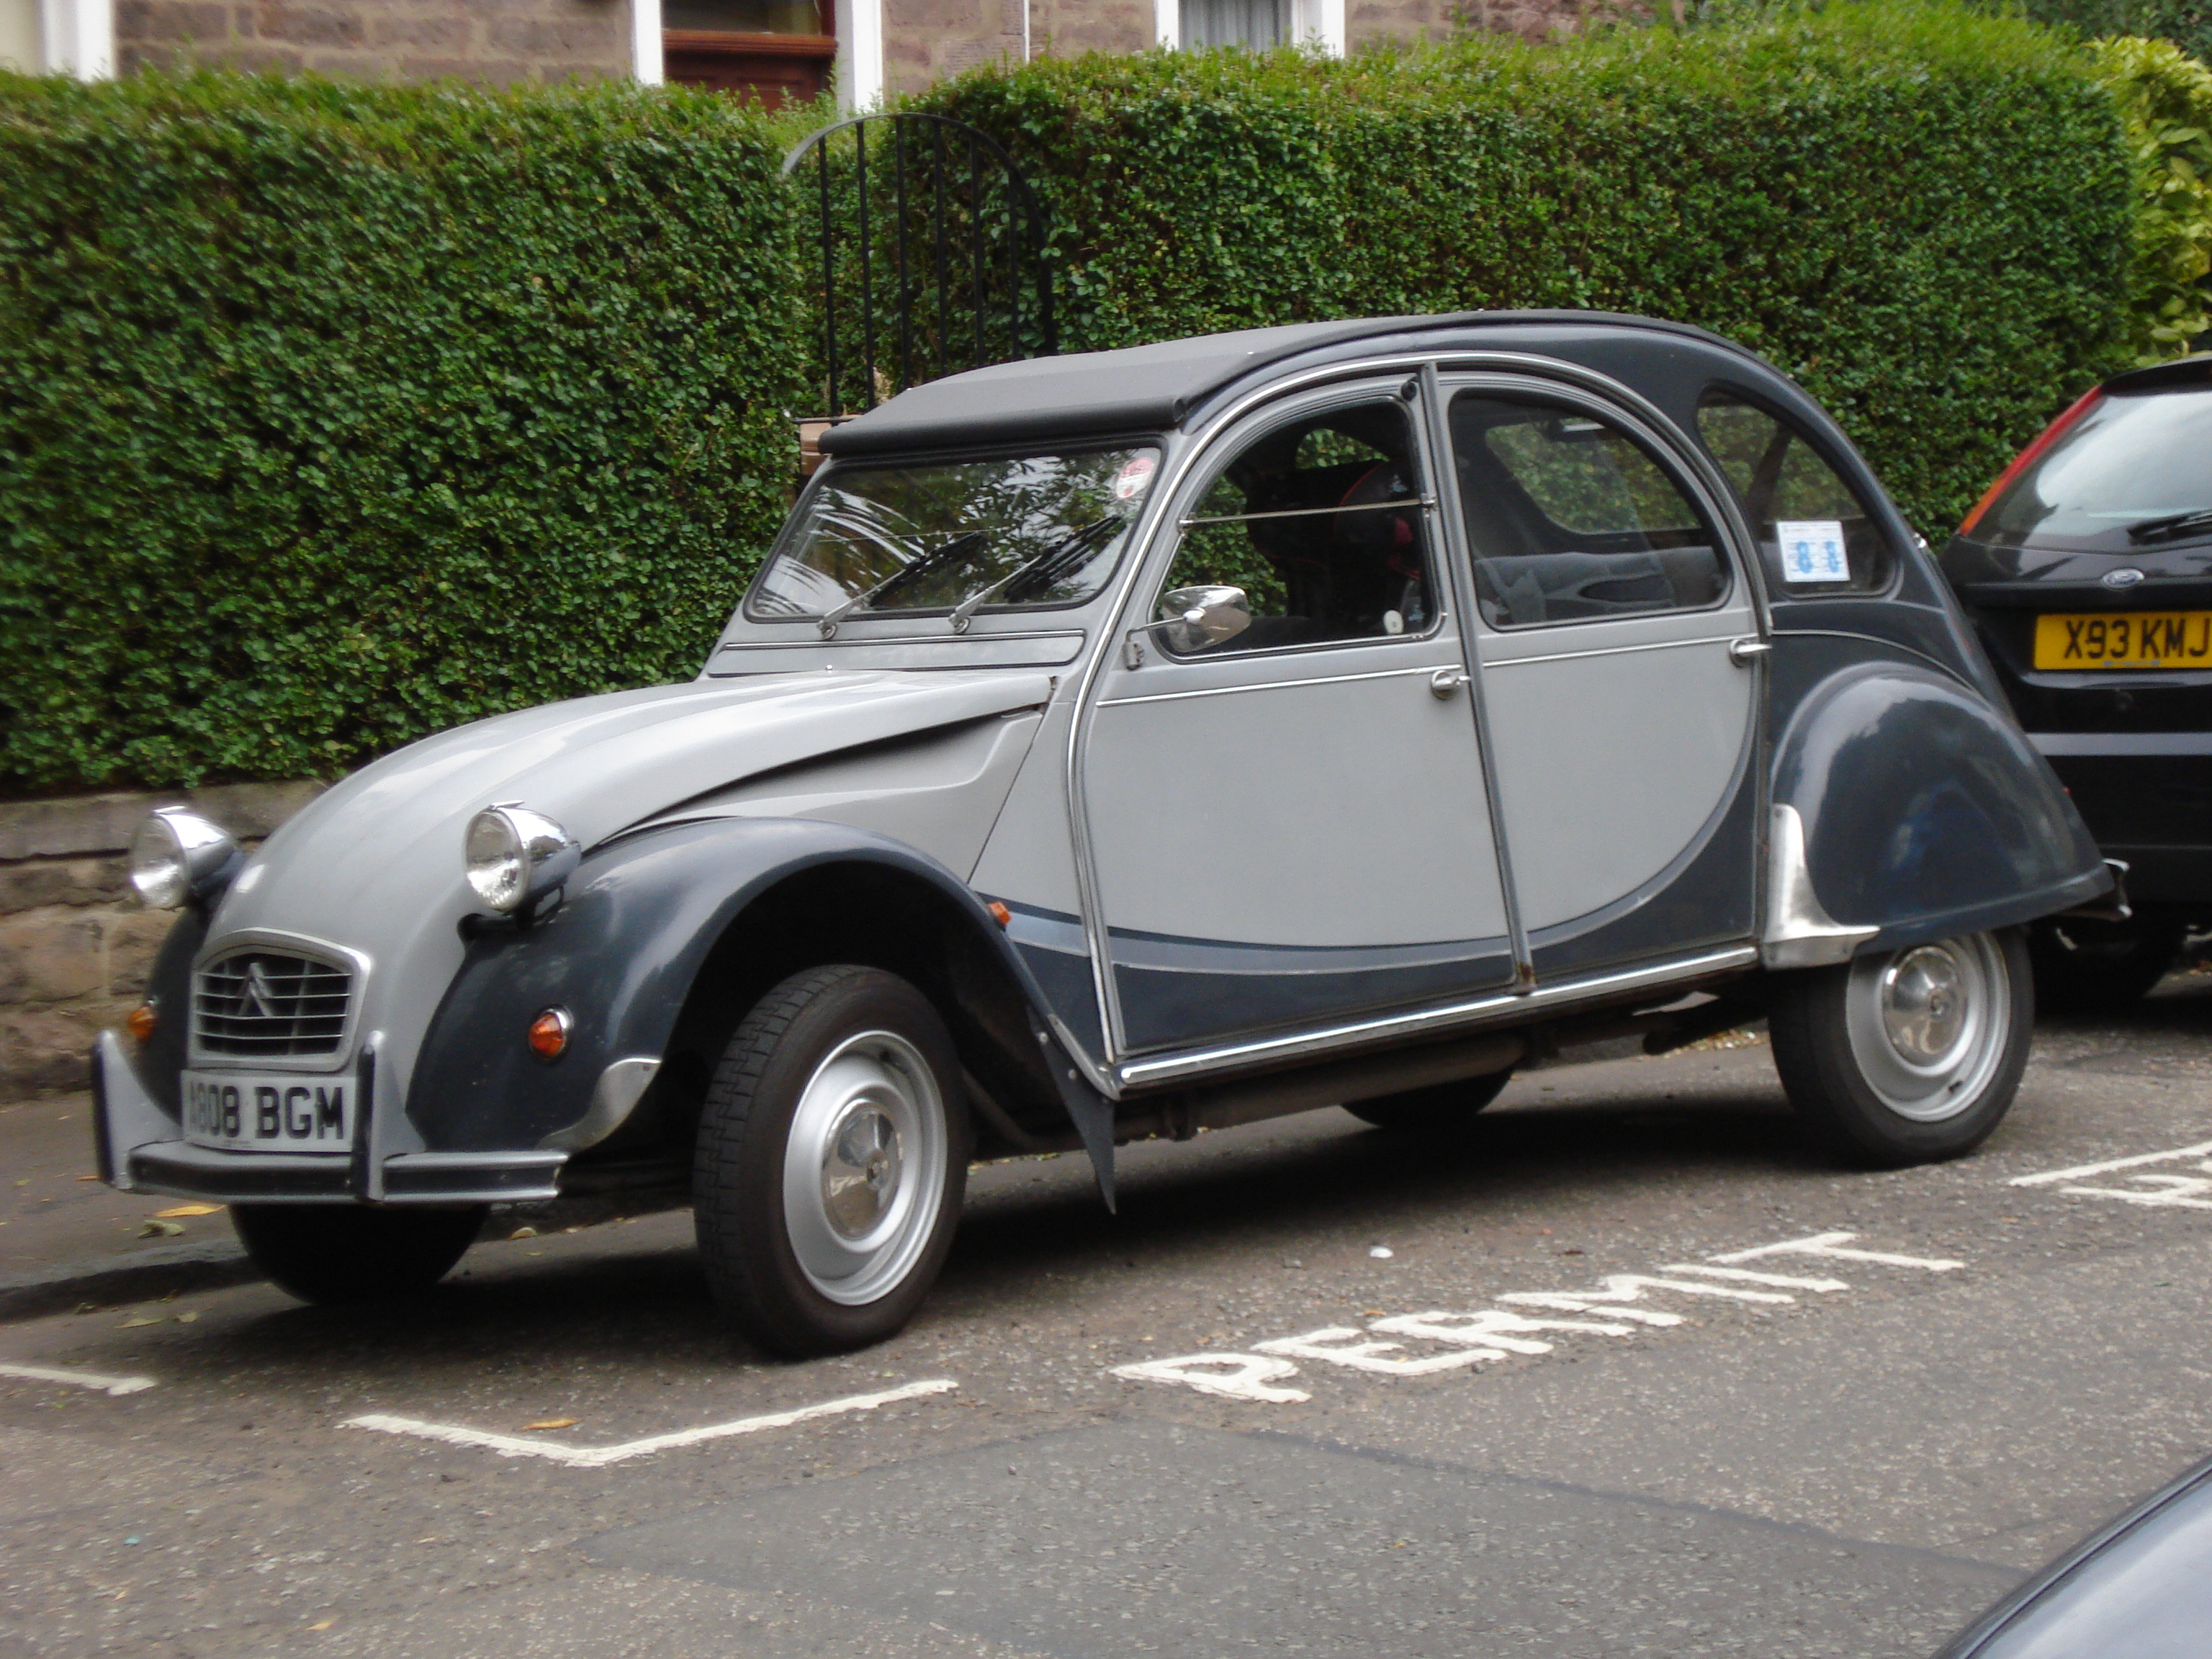 1984 citroen 2cv charleston images pictures and videos. Black Bedroom Furniture Sets. Home Design Ideas